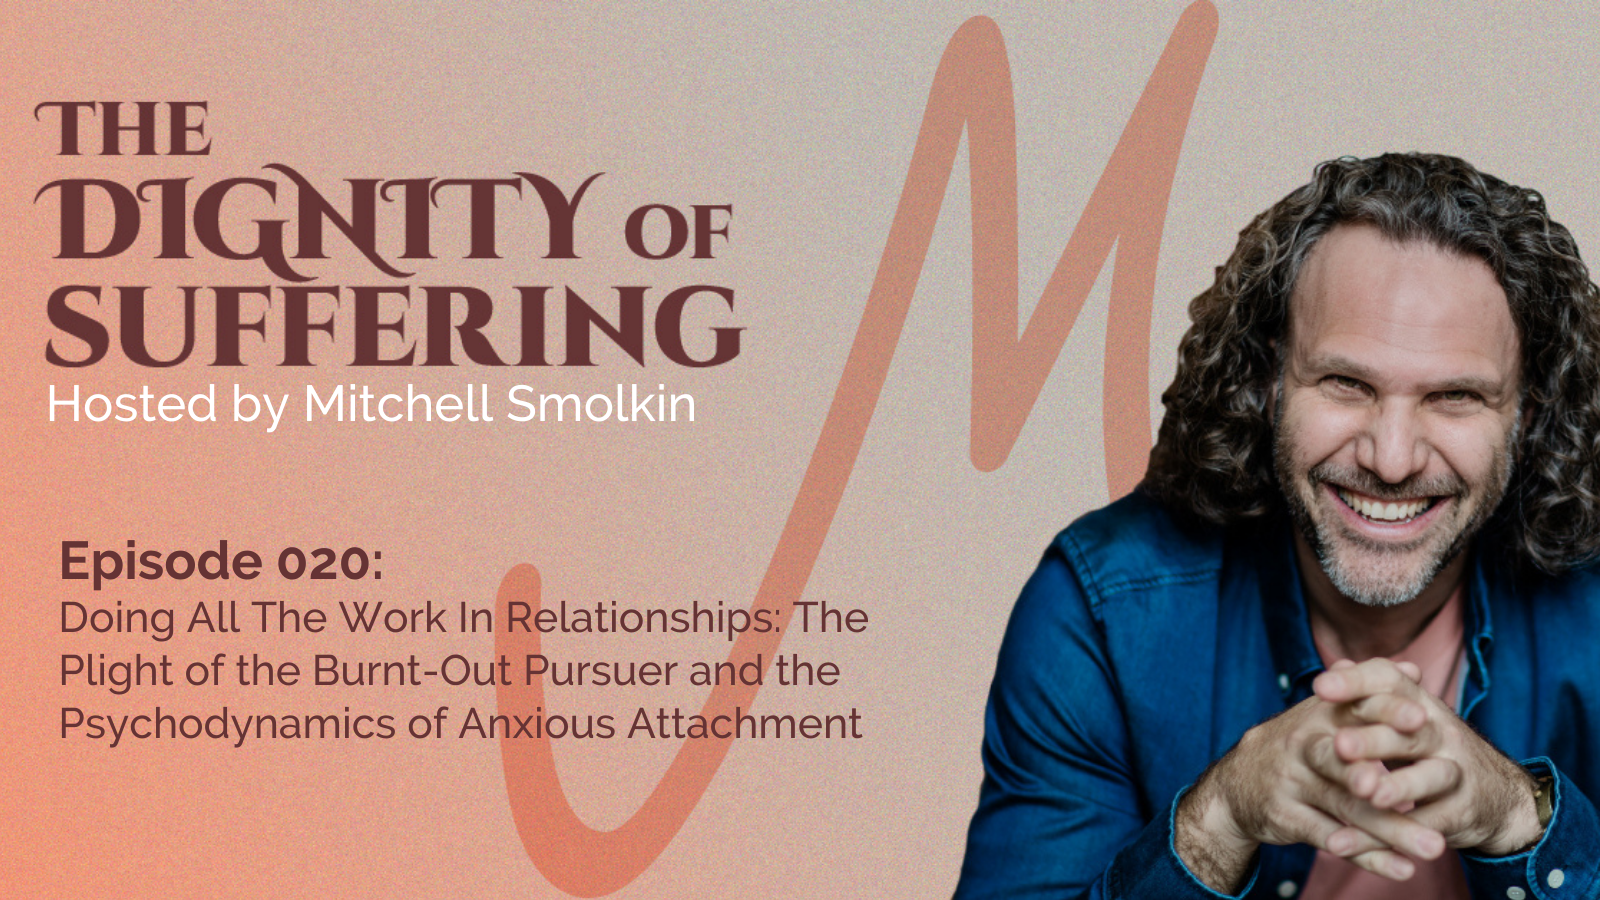 Episode 020: Doing All The Work In Relationships: The Plight of the Burnt-Out Pursuer and the Psychodynamics of Anxious Attachment